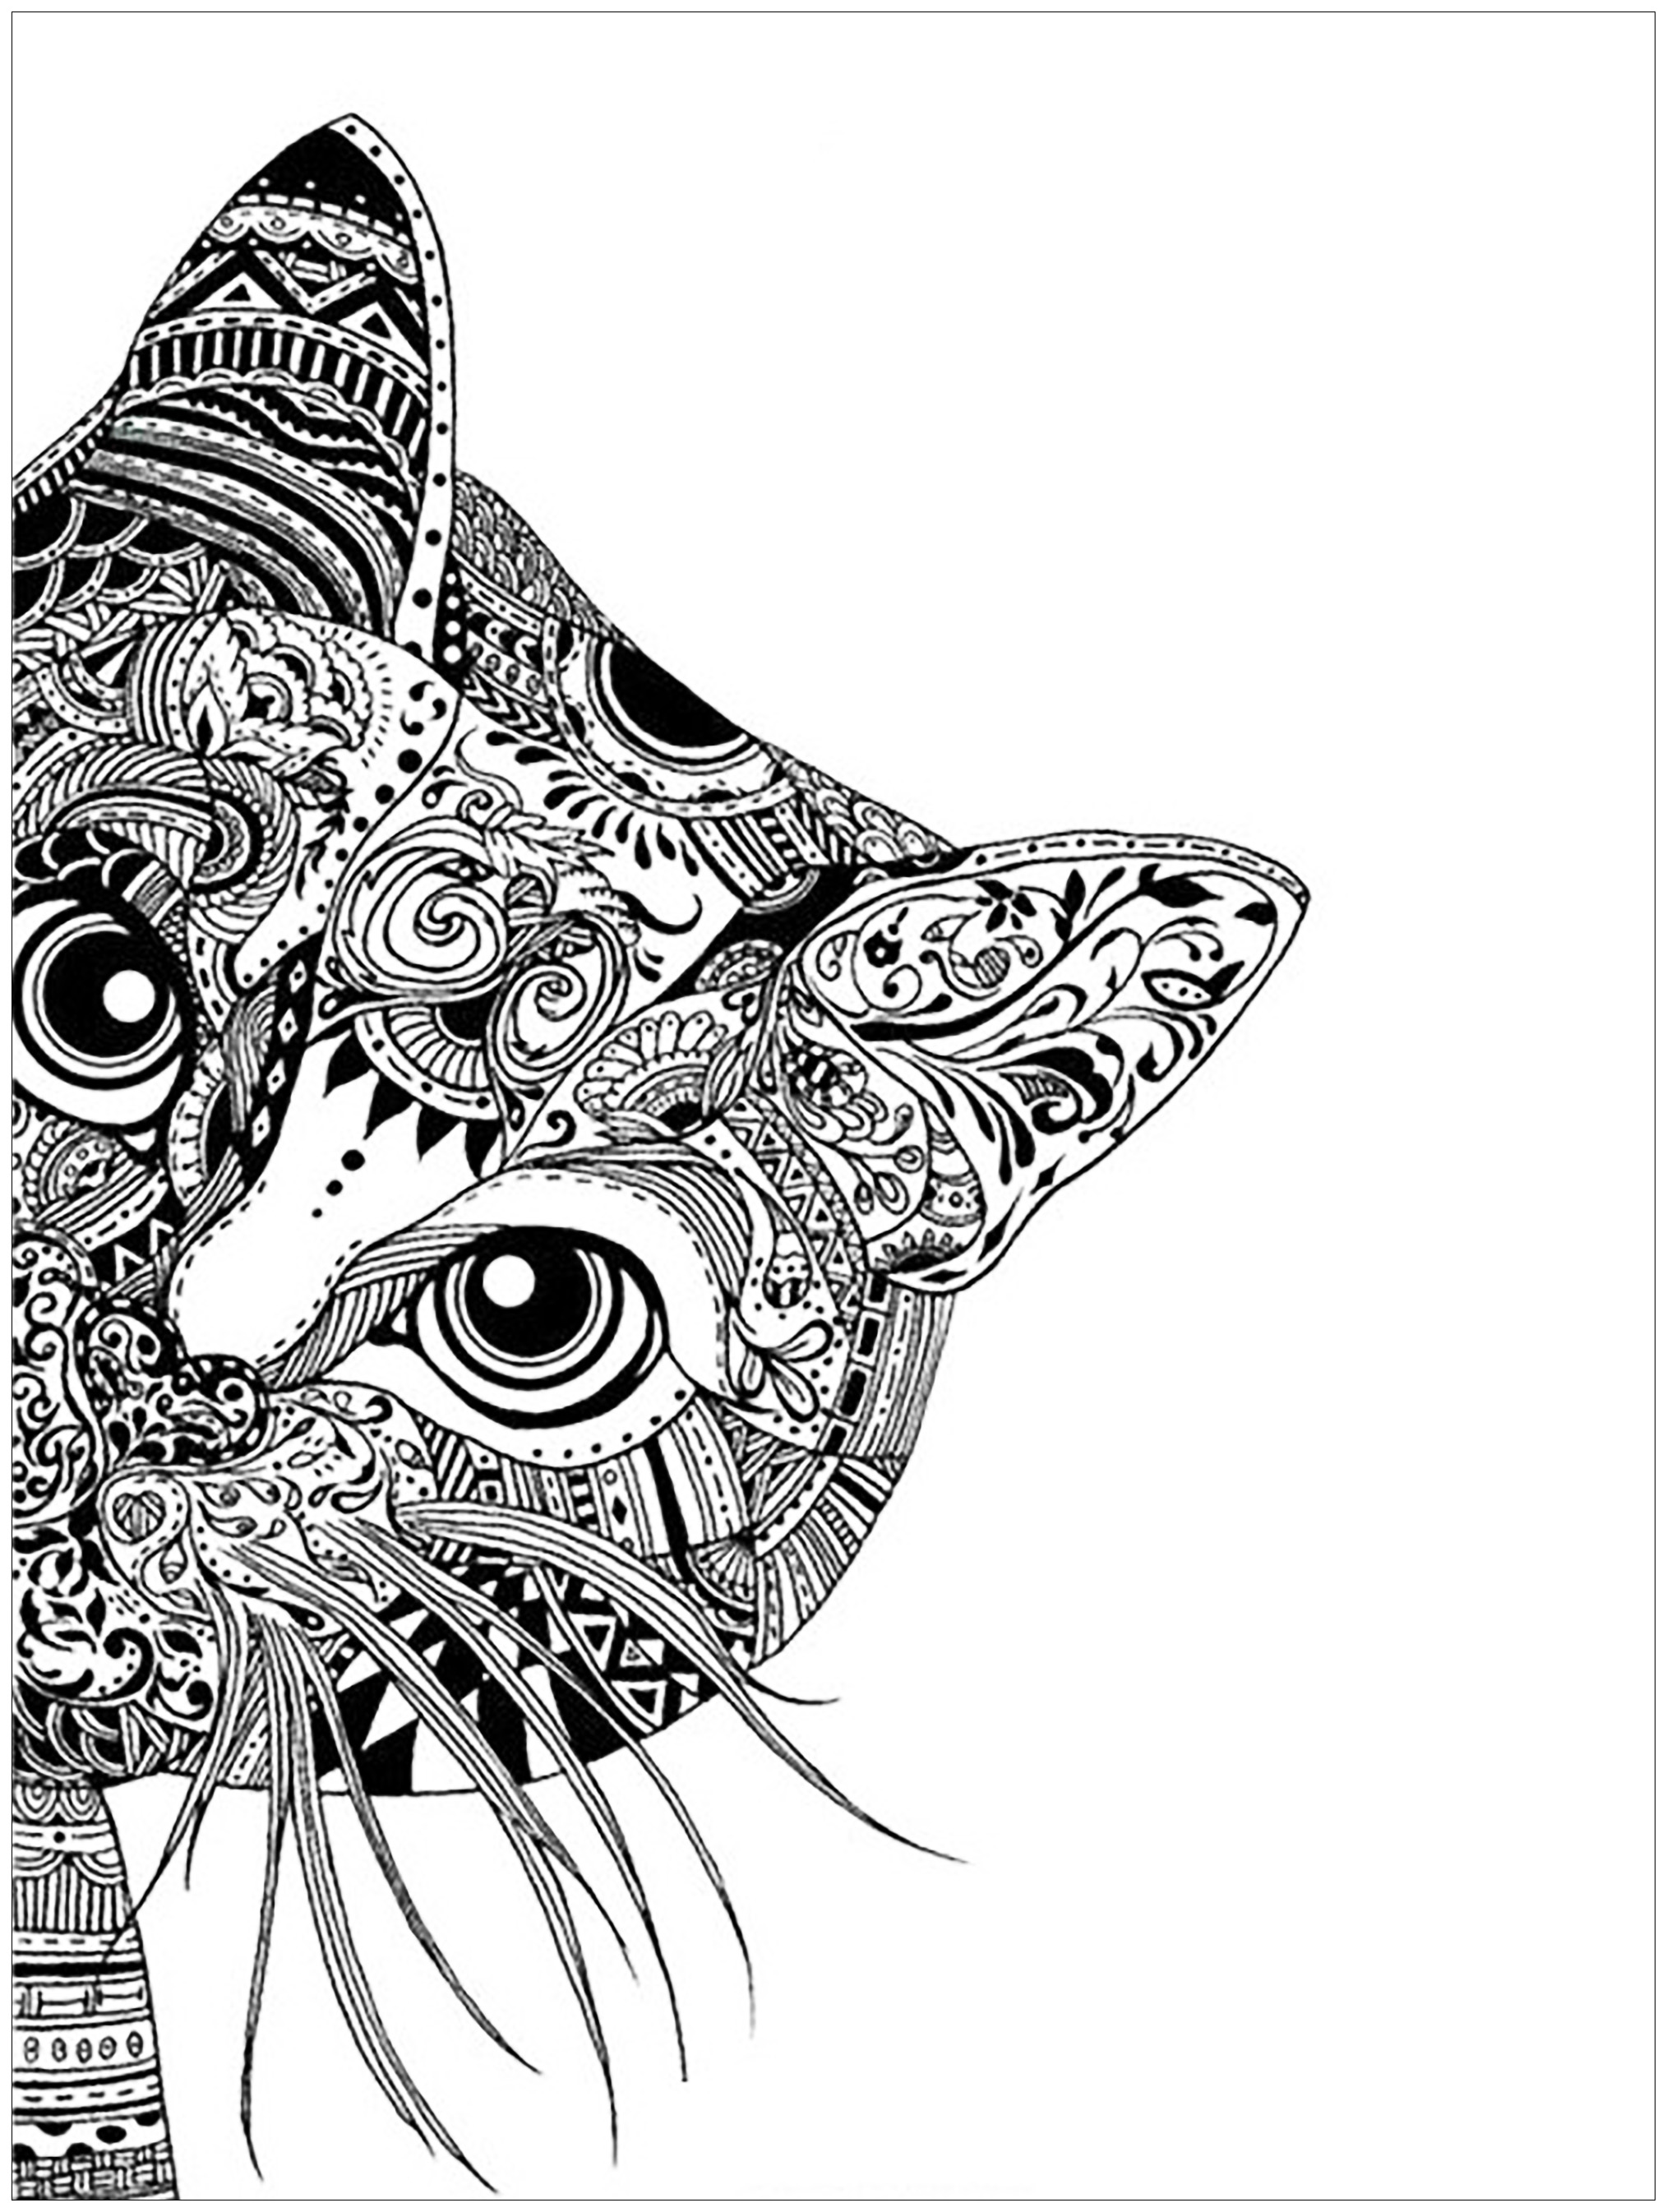 Coloring Page : Cat Head. Cat Head   Image With : Pet